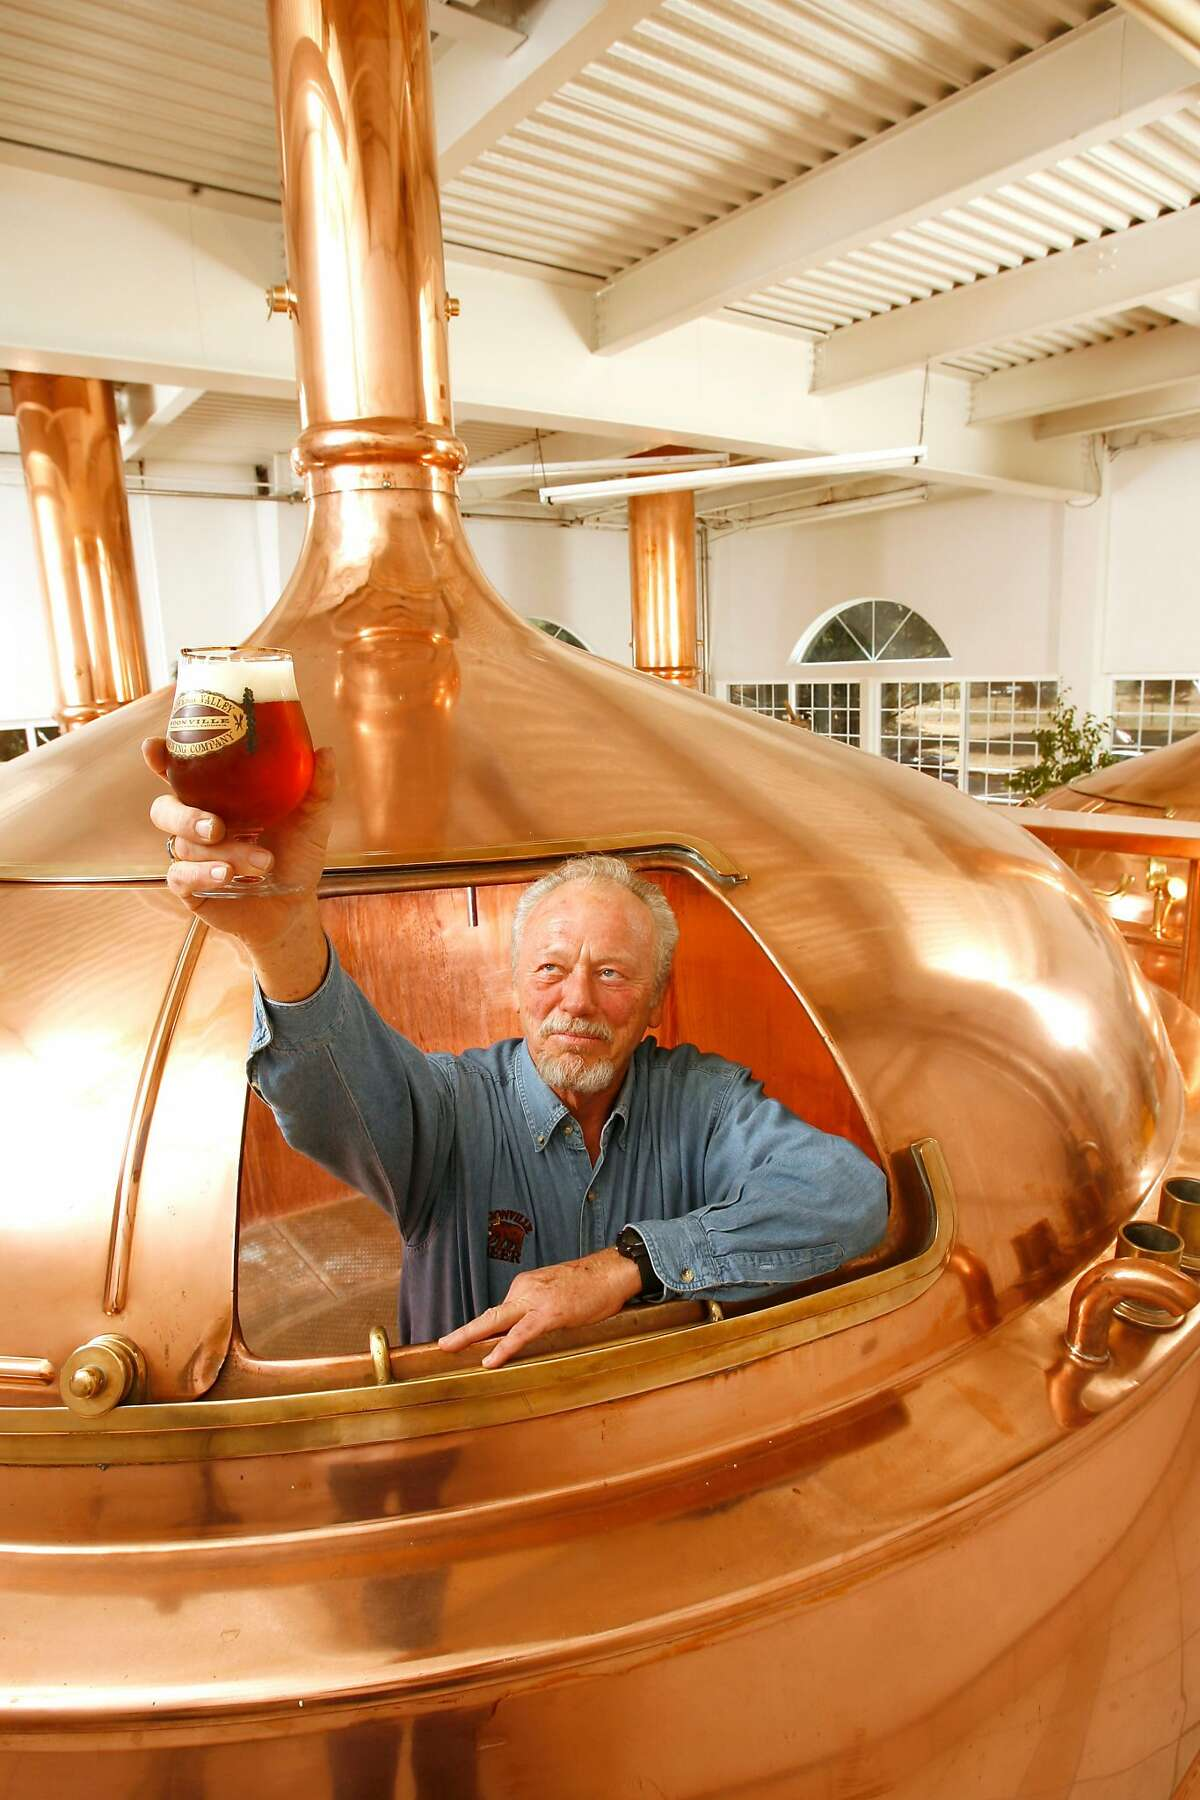 BEERTOUR29_352_cl.JPG Story about breweries in Mendocino and Sonoma counties. This is Ken Allen of Anderson Brewing Company in Boonville. He is inside one of his copper boiling kettles. Craig Lee / The Chronicle Ran on: 11-03-2006 Ken Allen, president of Anderson Valley Brewing Co., usually enjoys his firms beer someplace other than inside a copper boiling kettle.